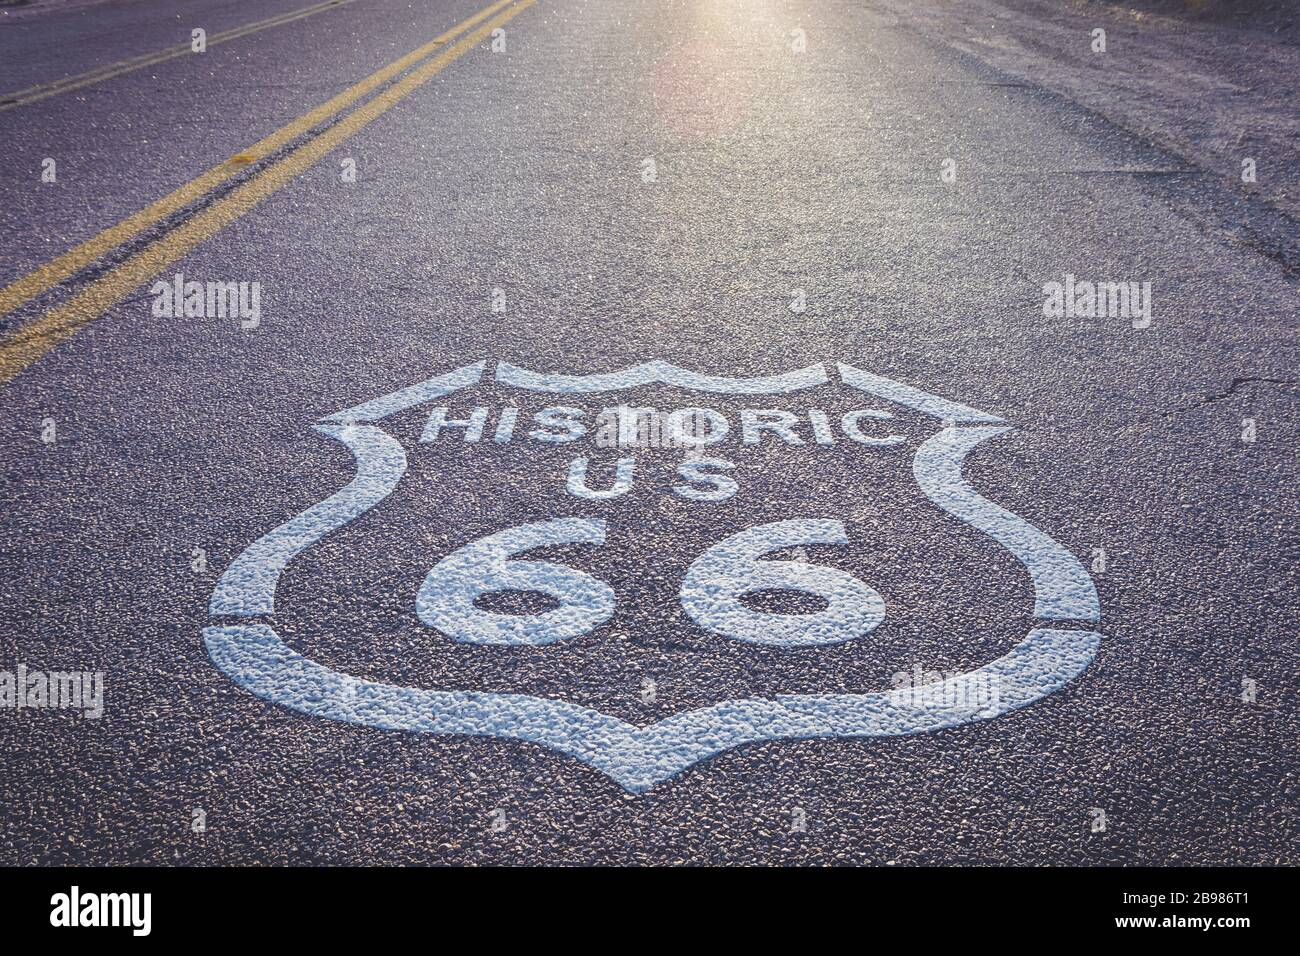 Historic US Route 66 highway sign on asphalt Stock Photo